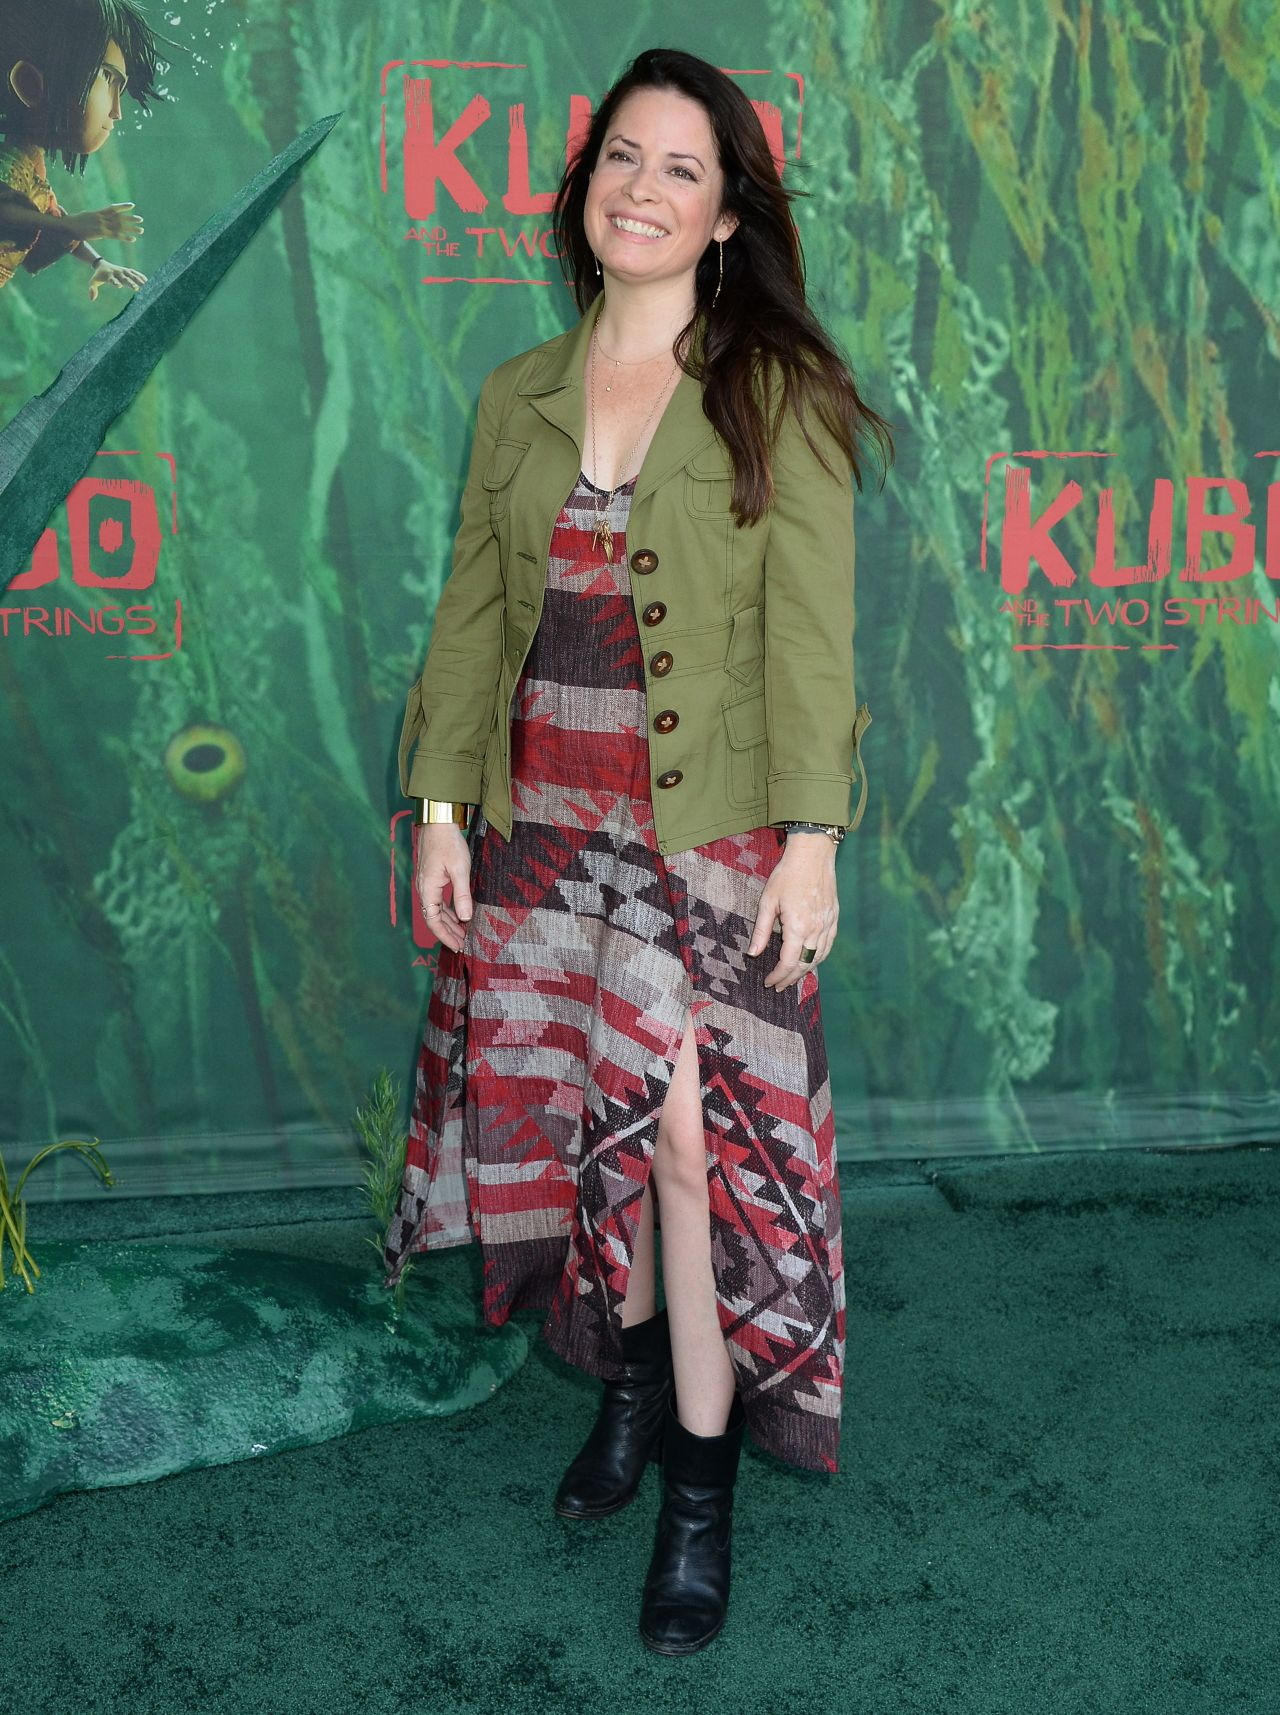 Holly Marie Combs  Kubo And The Two Strings Premiere in Universal City 8142016